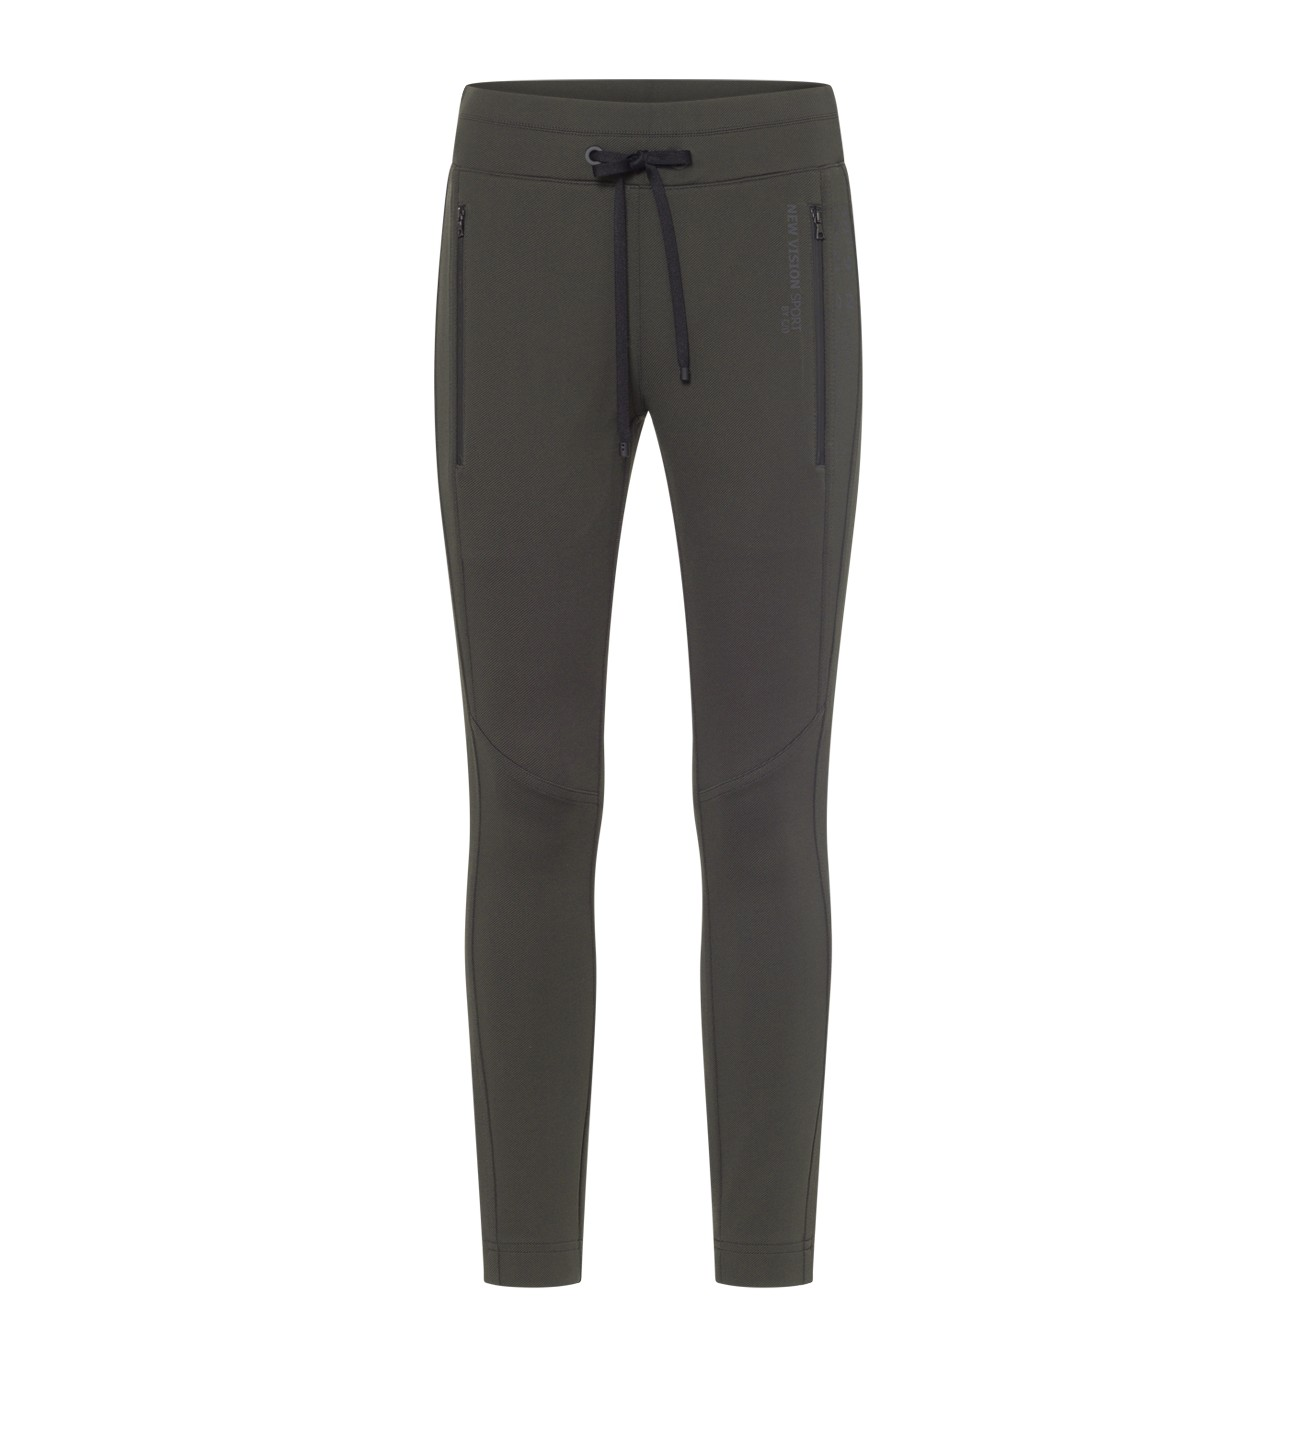 CAMBIO_JOGGING_TROUSERS_WITH_ZIPPERS_MARIONA_FASHION_CLOTHING_WOMAN_SHOP_ONLINE_0631/02